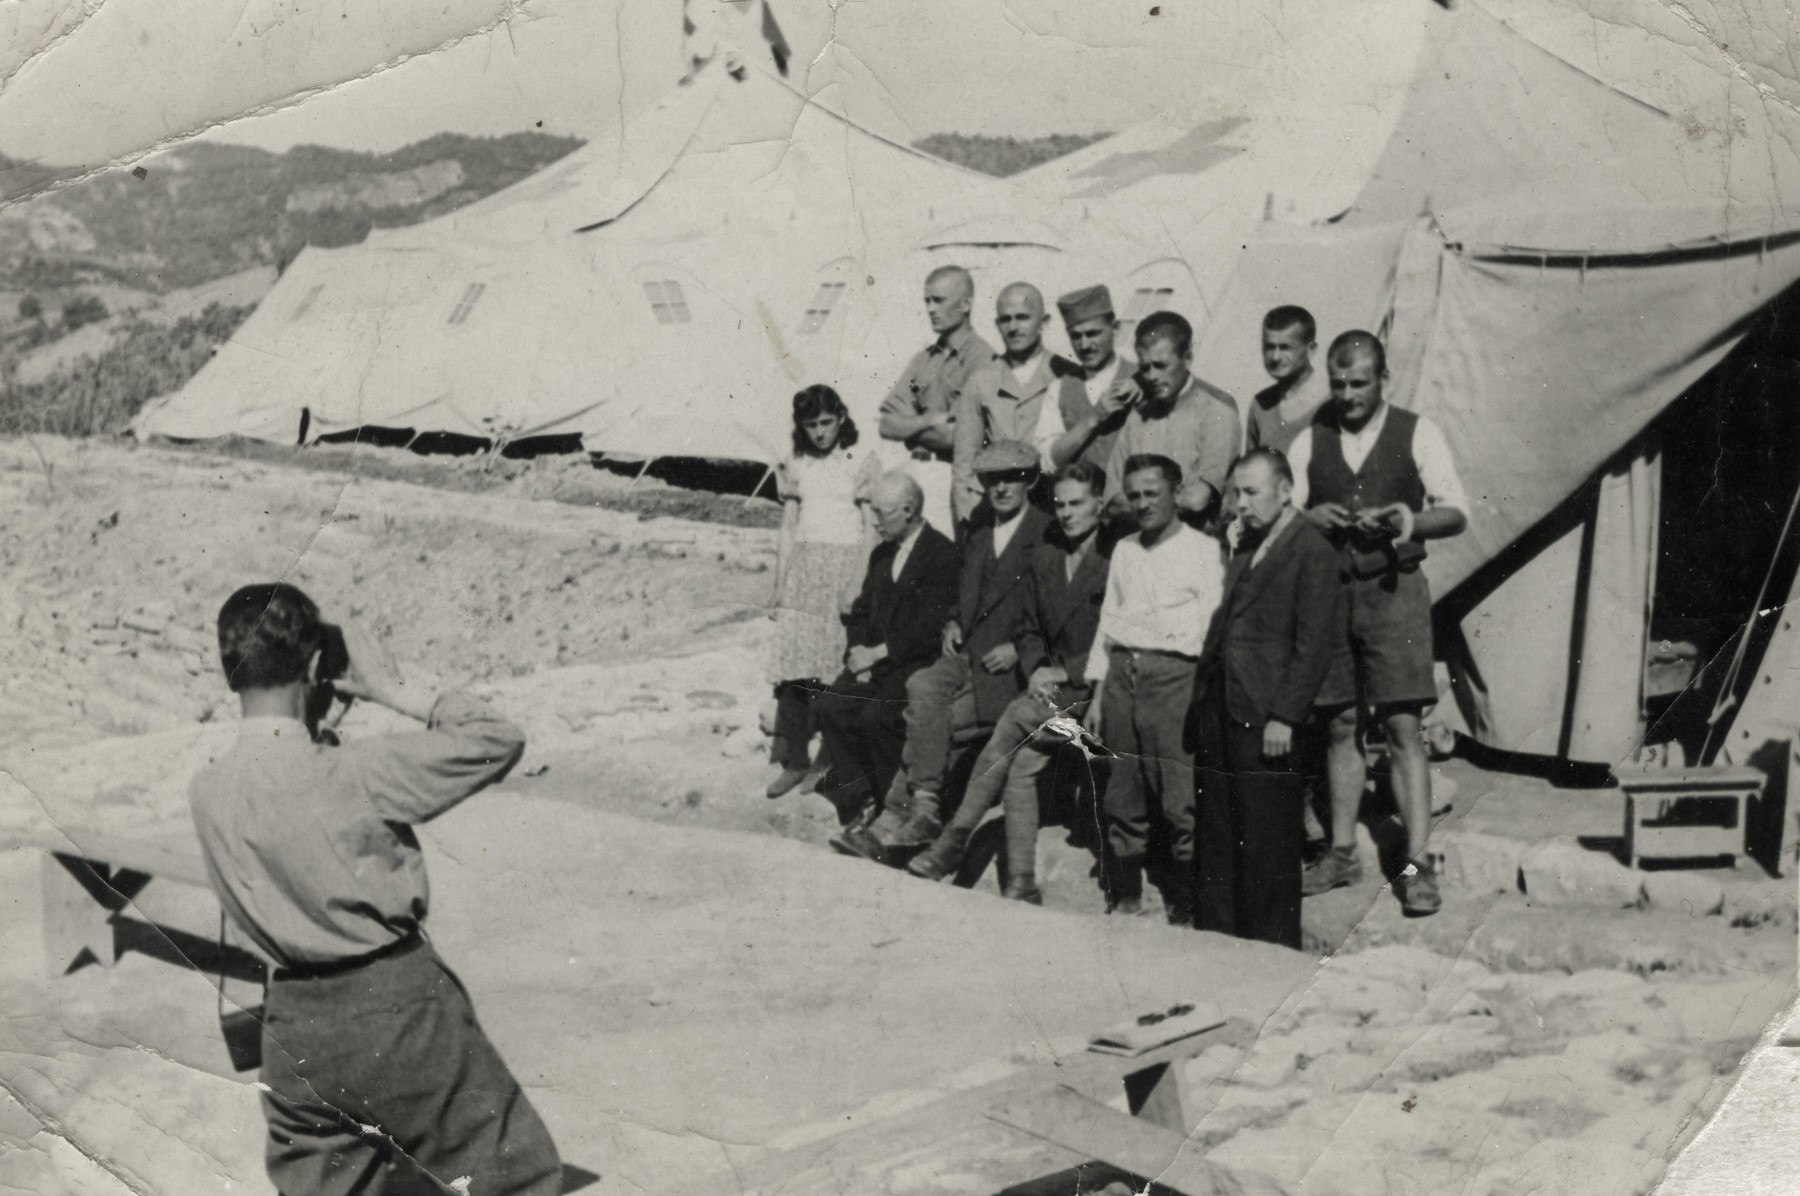 An Italian soldier takes a photo of a group of prisoners outside a tent in the Preza labor camp.  Dr. Joseph Teitelbaum is setting in the front row, left.